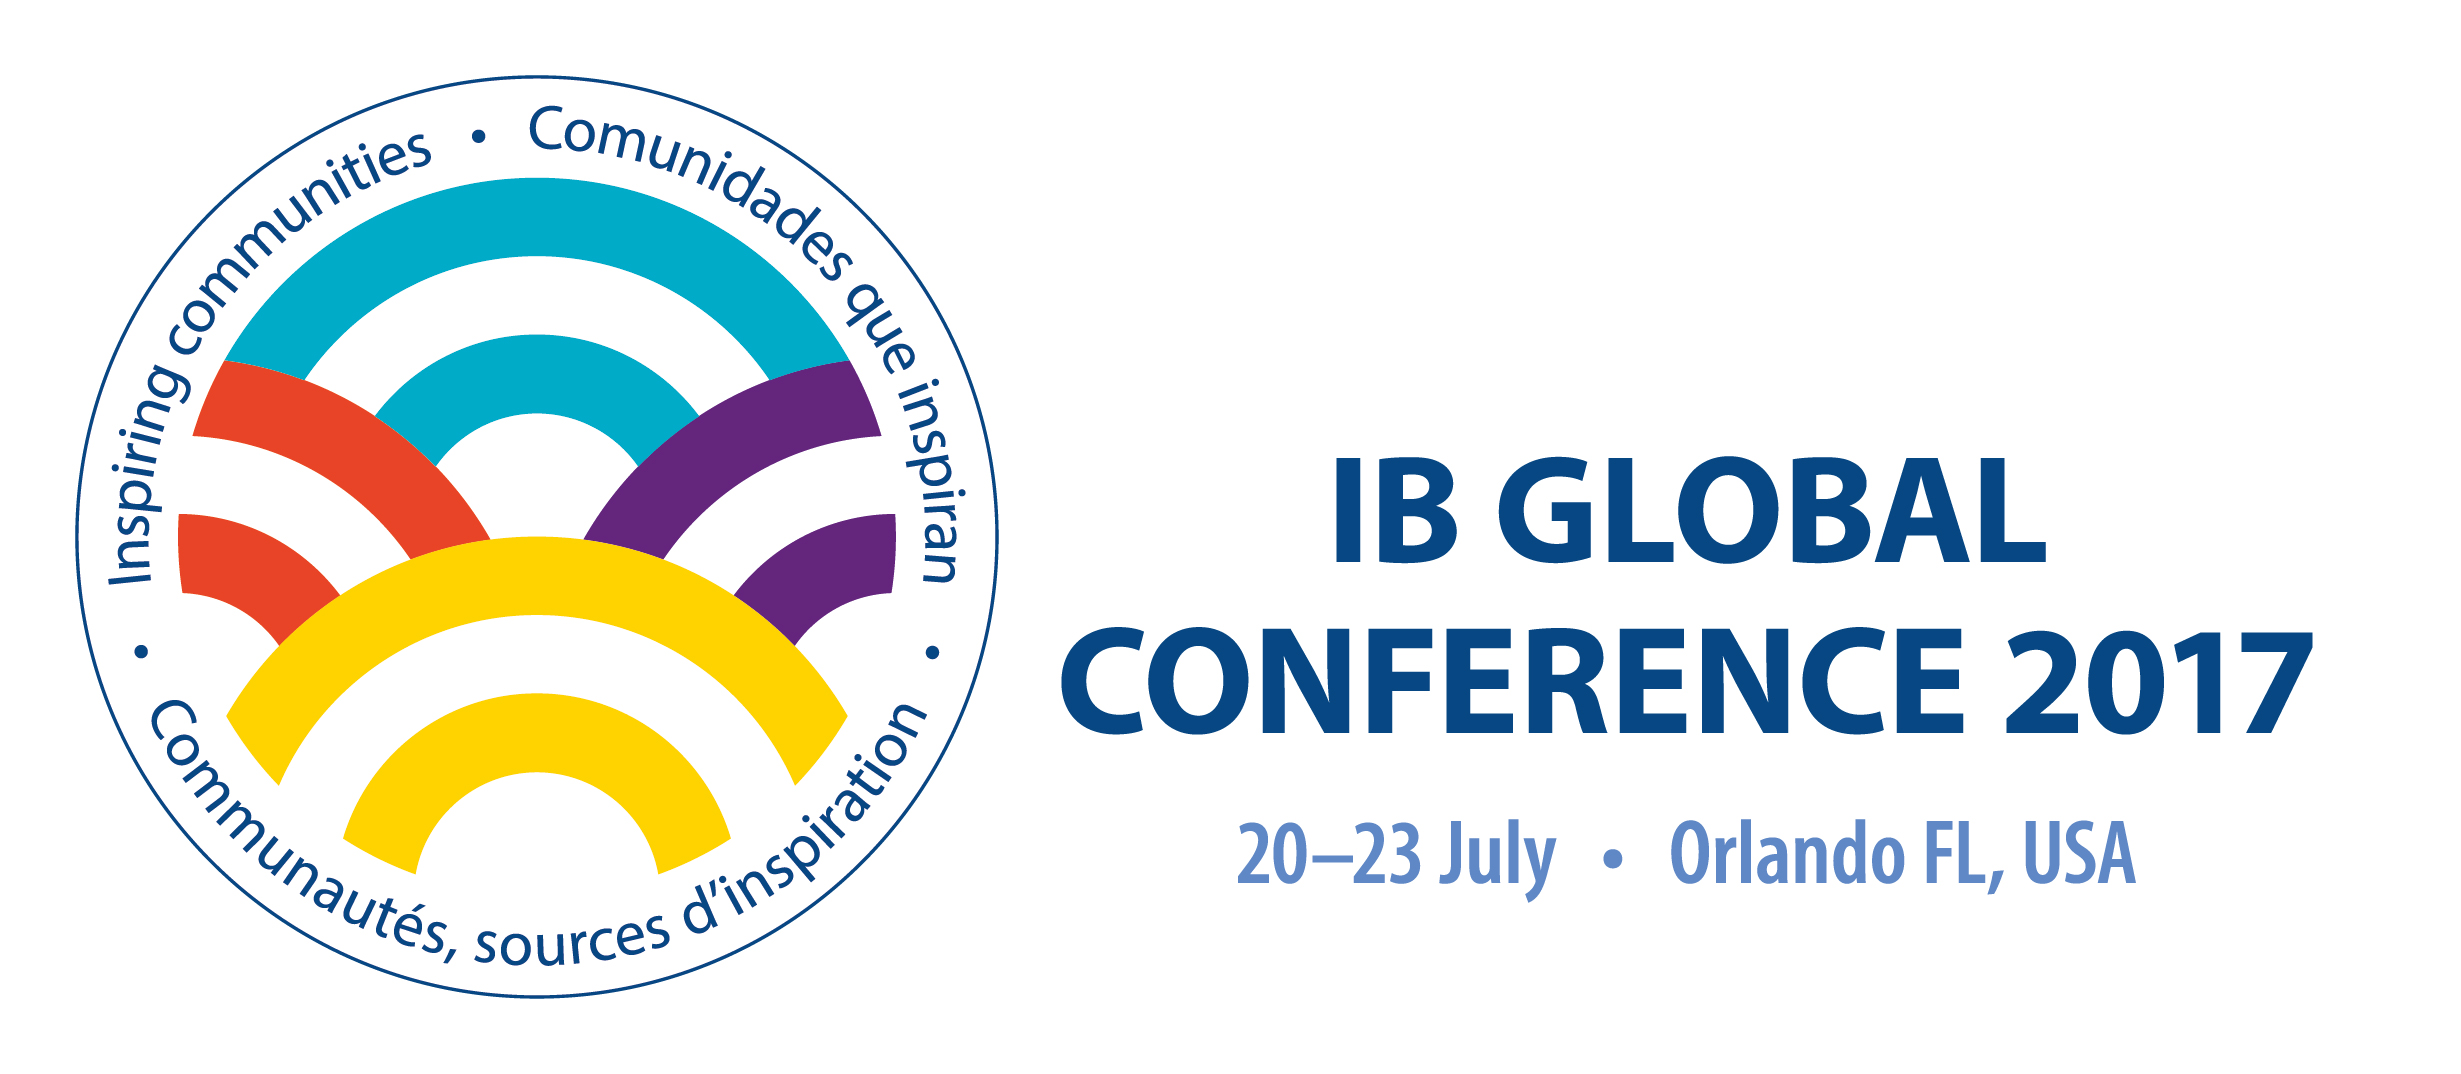 IB Global Conference 2017 - Orlando FL, USA